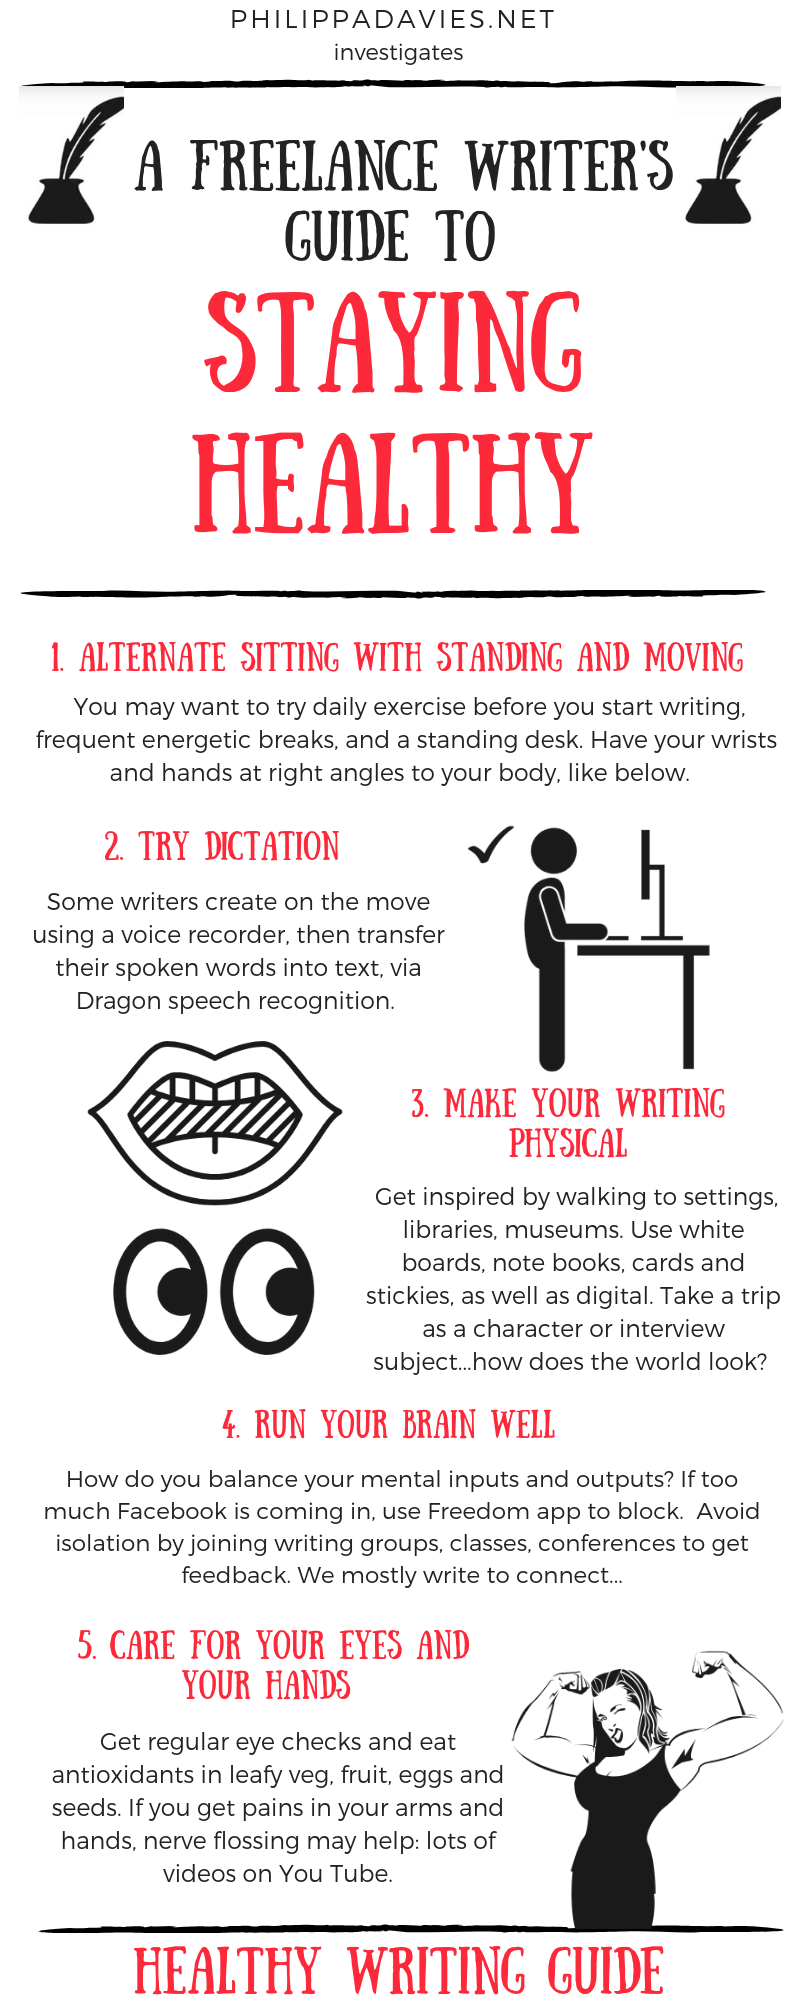 Freelance writer's guide to staying healthy